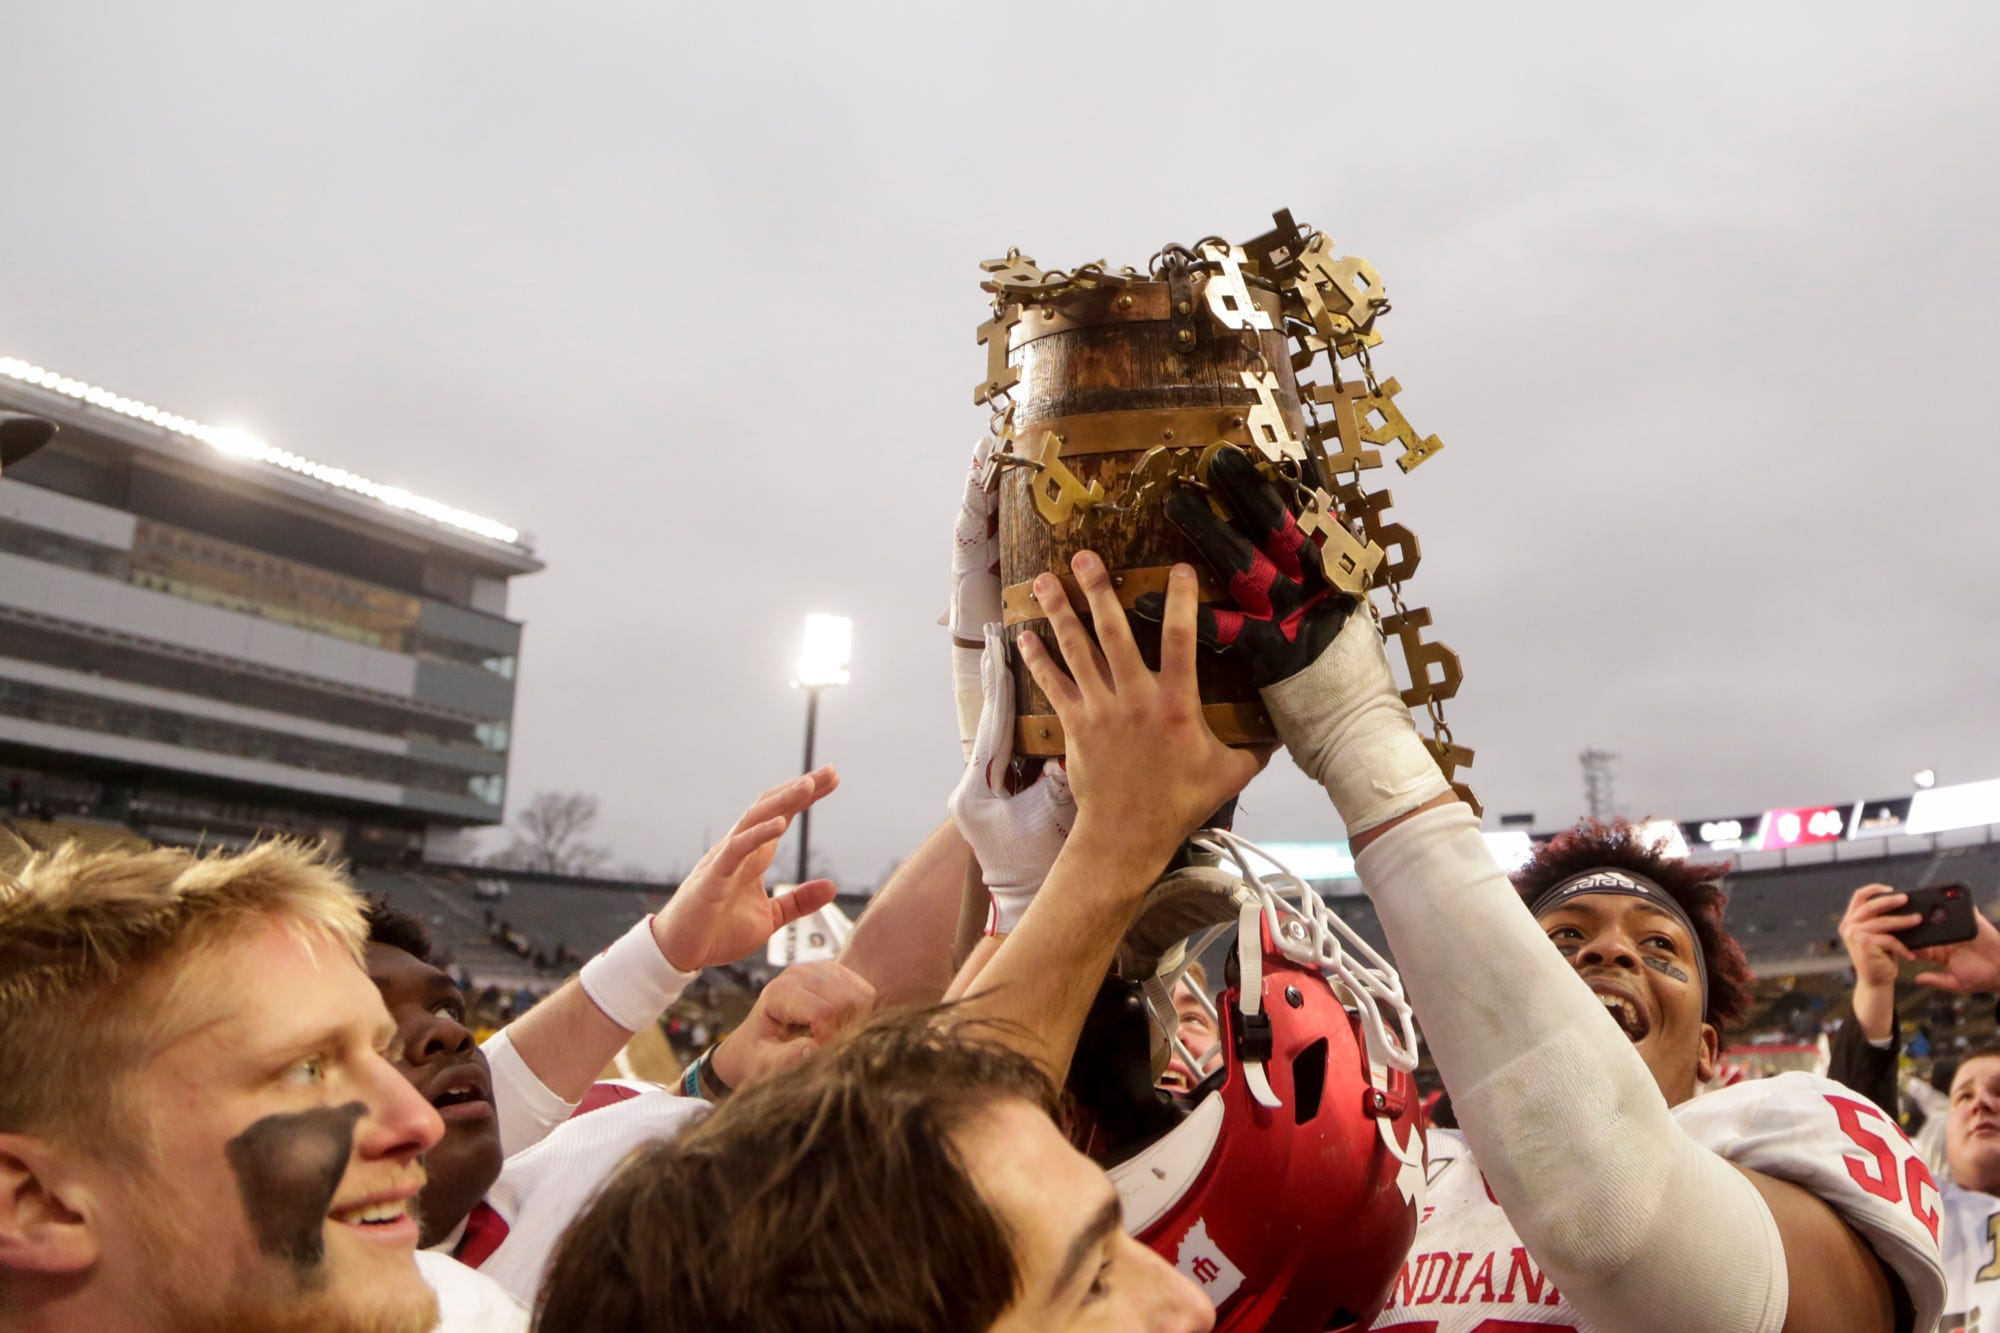 College football COVID-19 update: Indiana-Purdue game, Frisco Bowl called off